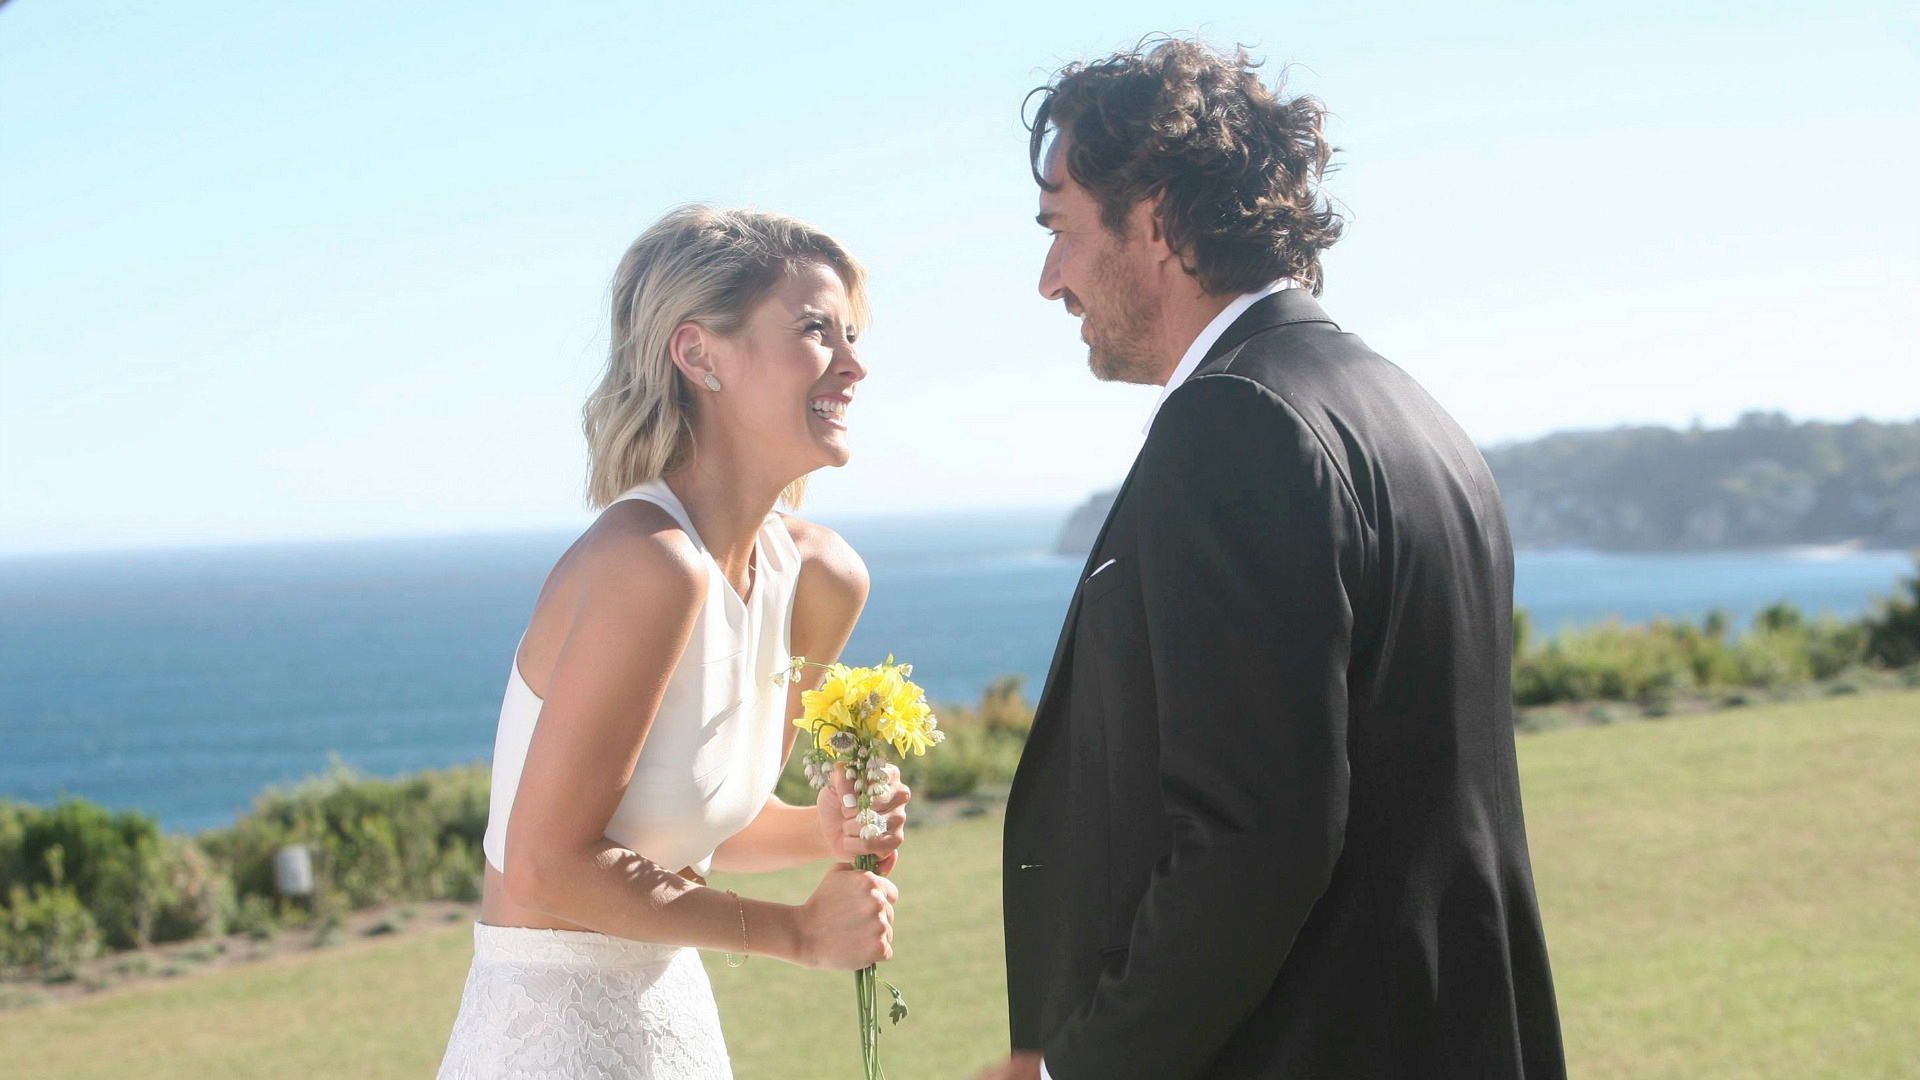 Ridge and Caroline had a romantic, beachside wedding on The Bold and the Beautiful.